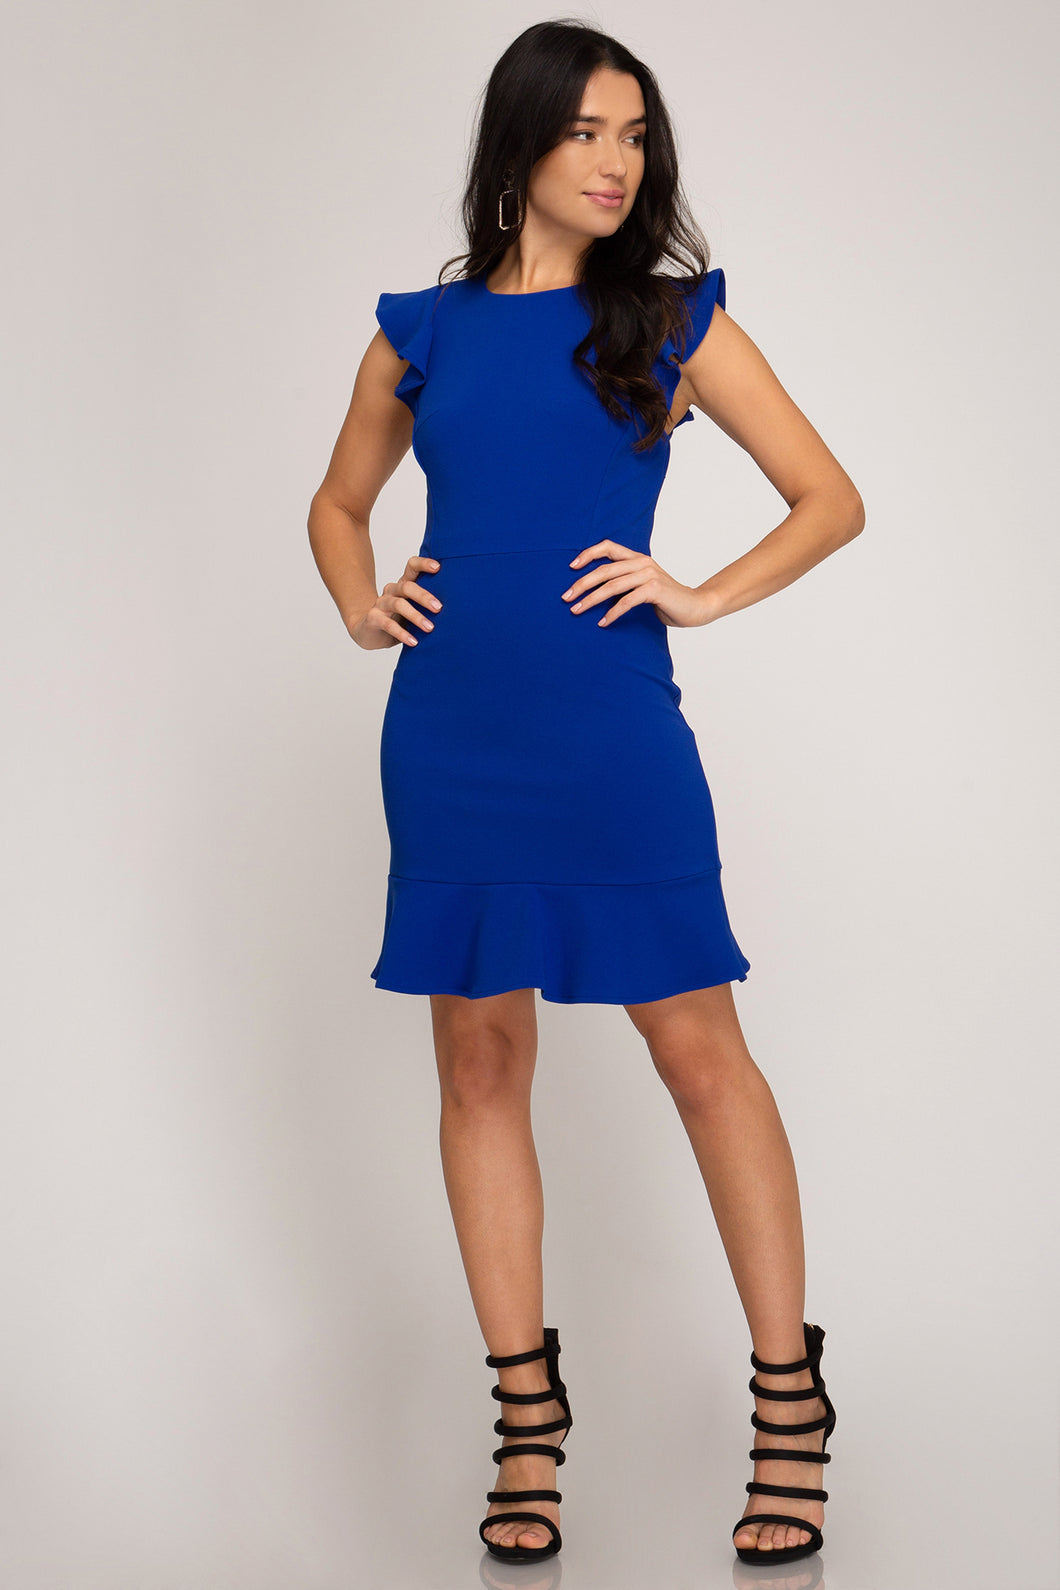 Ruffle Dress - Royal Blue